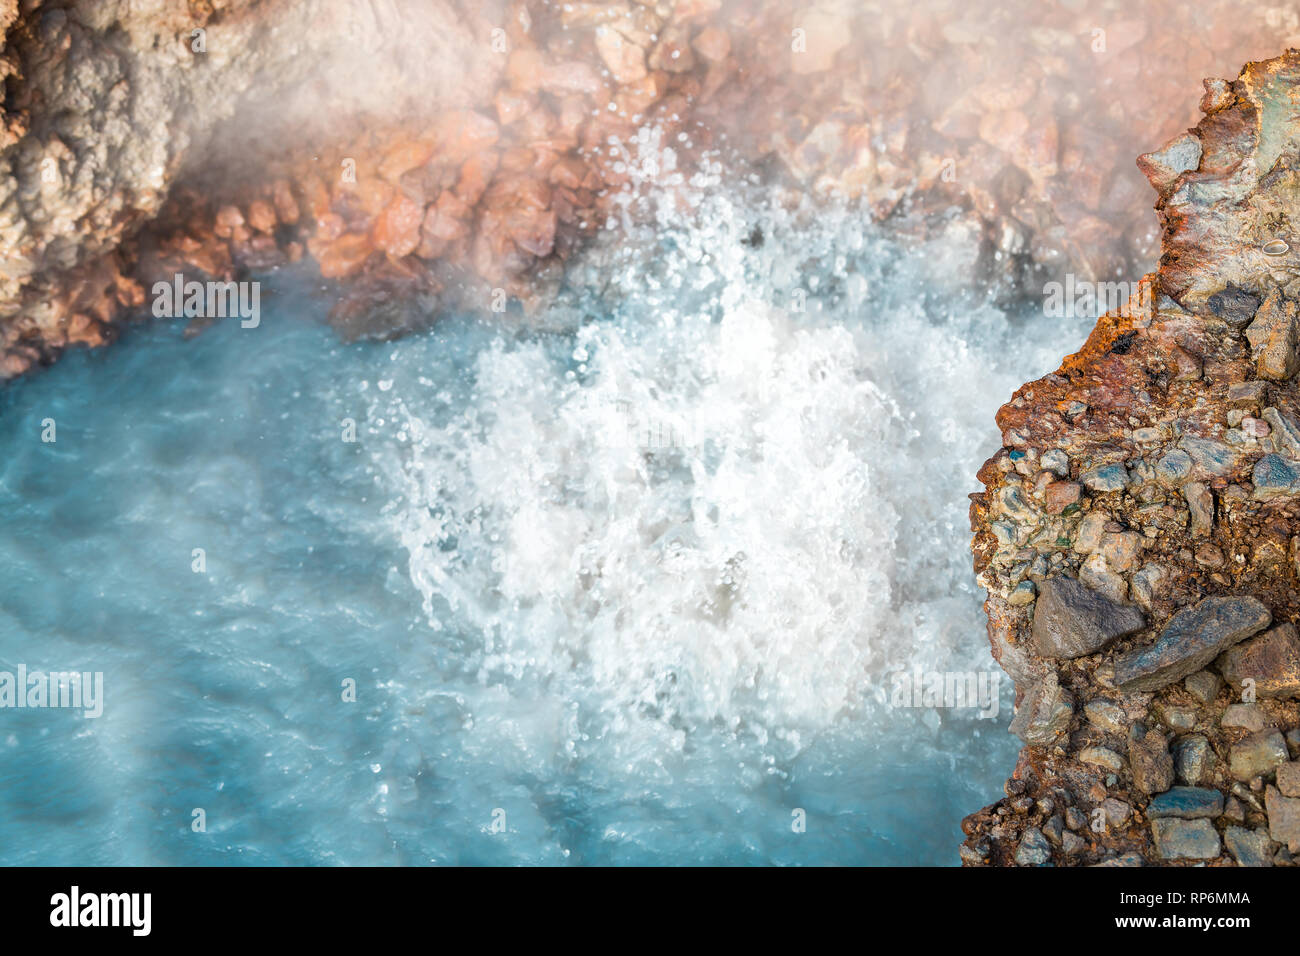 Reykjadalur, Iceland Hveragerdi Hot Springs abstract closeup of turquoise color steam fumarole vent in golden circle with nobody on hiking trail - Stock Image